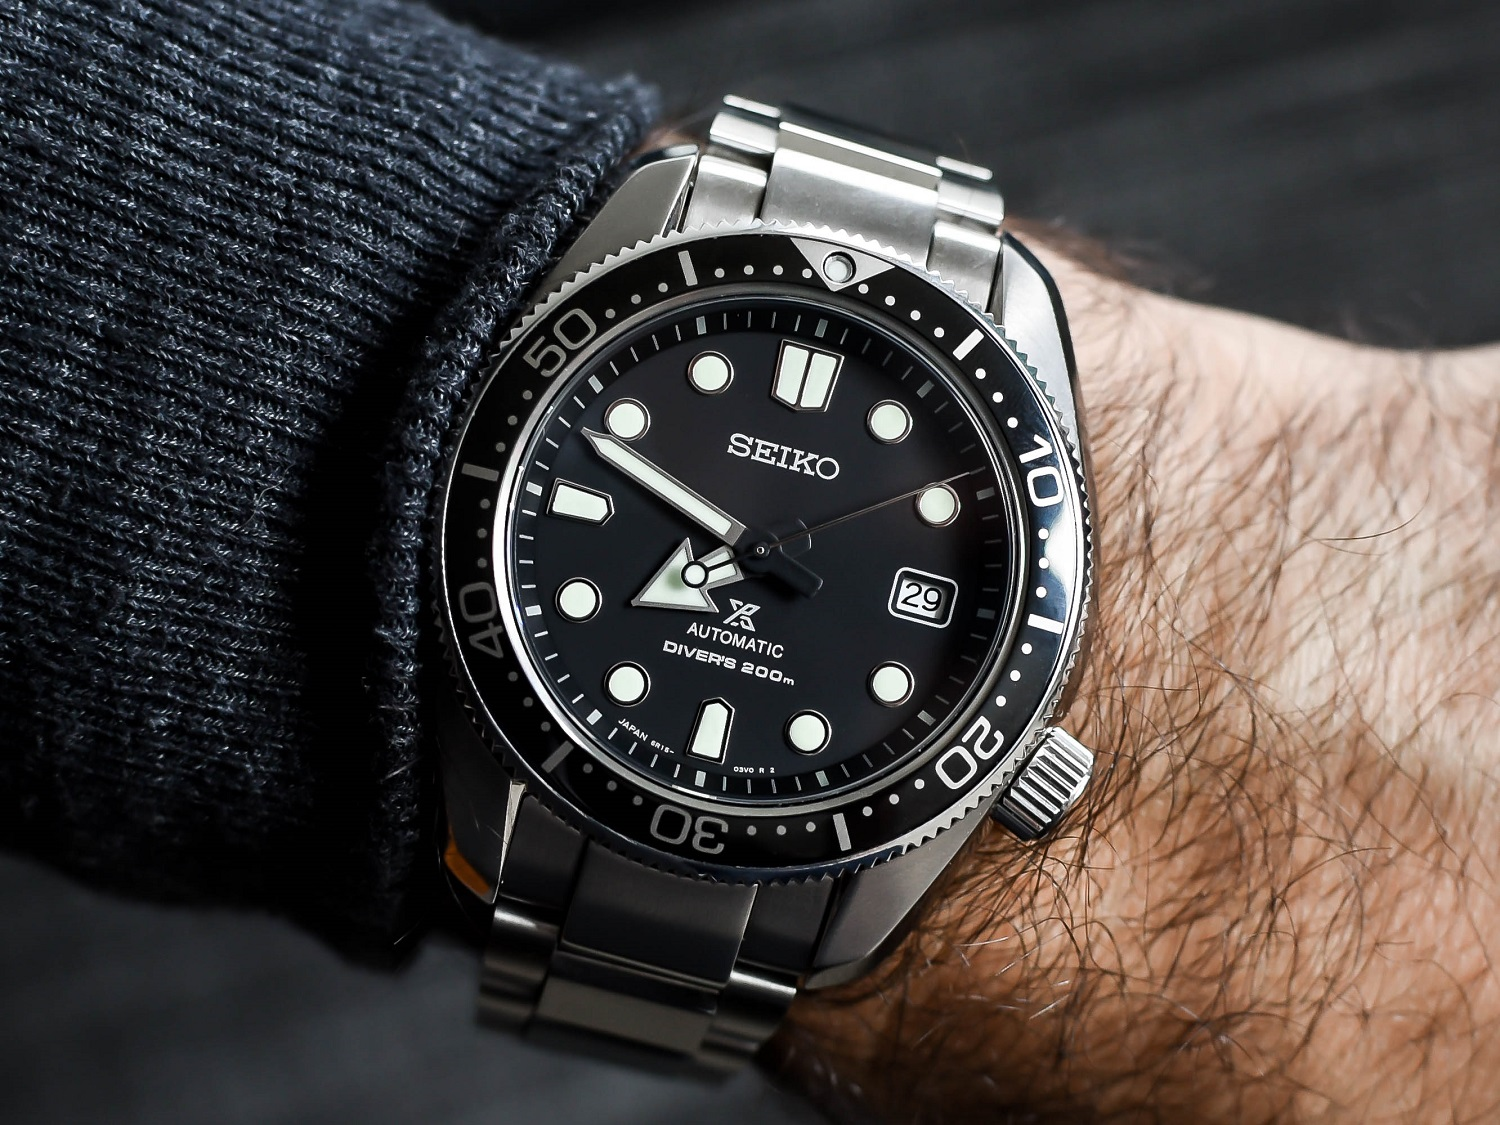 Seiko SBDC061 on the wrist